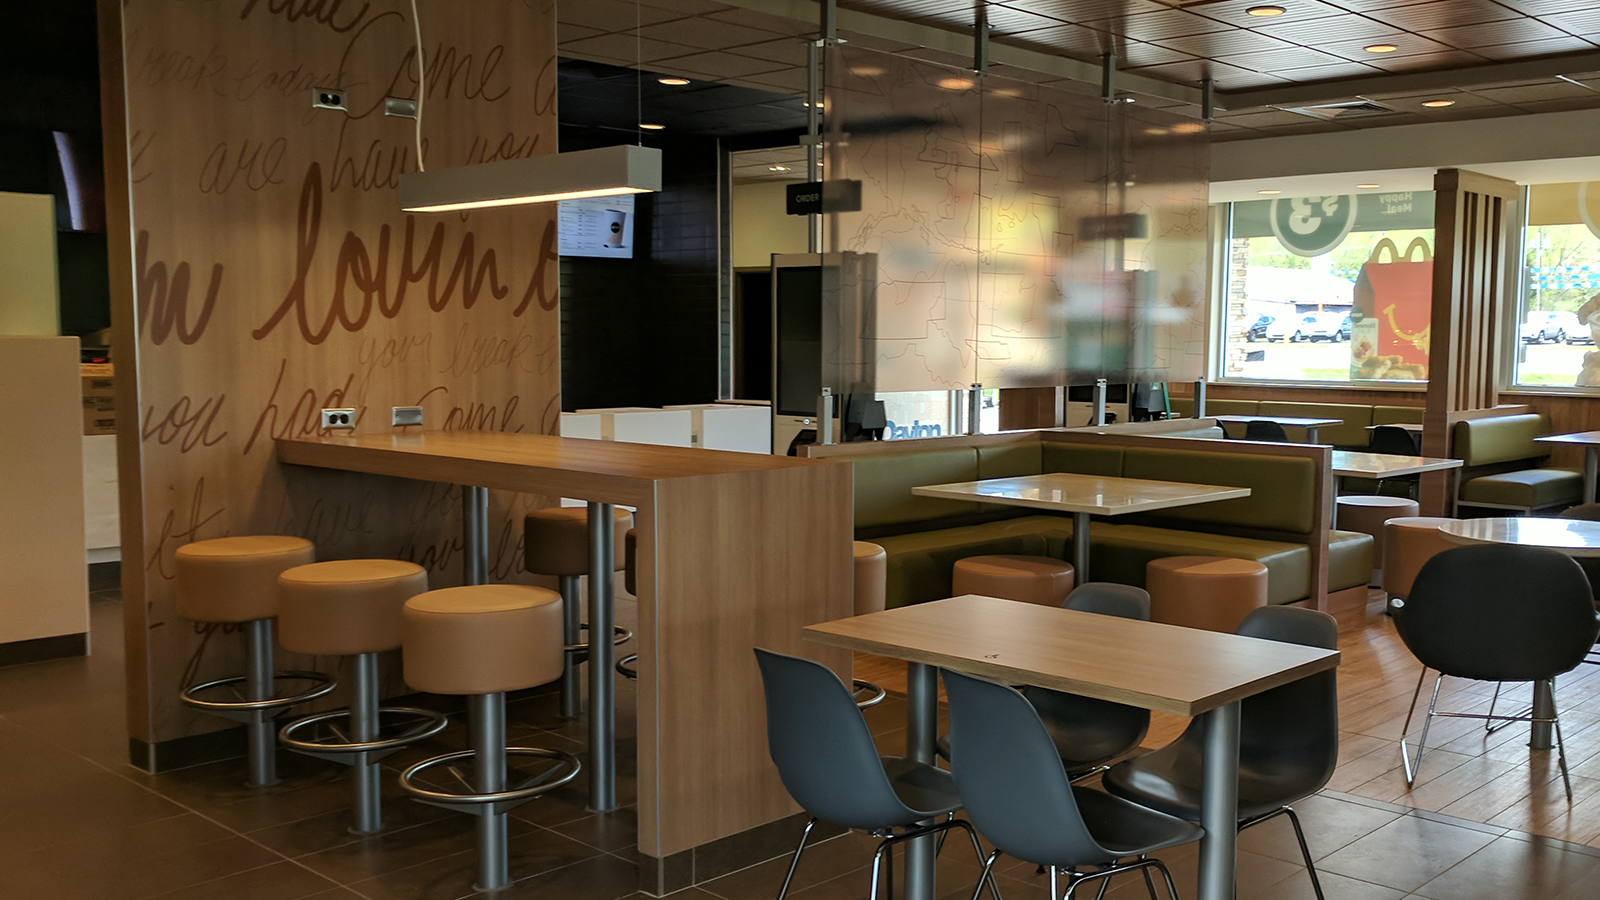 Dayton Mcdonald S Lobby To Reopen On April 18th